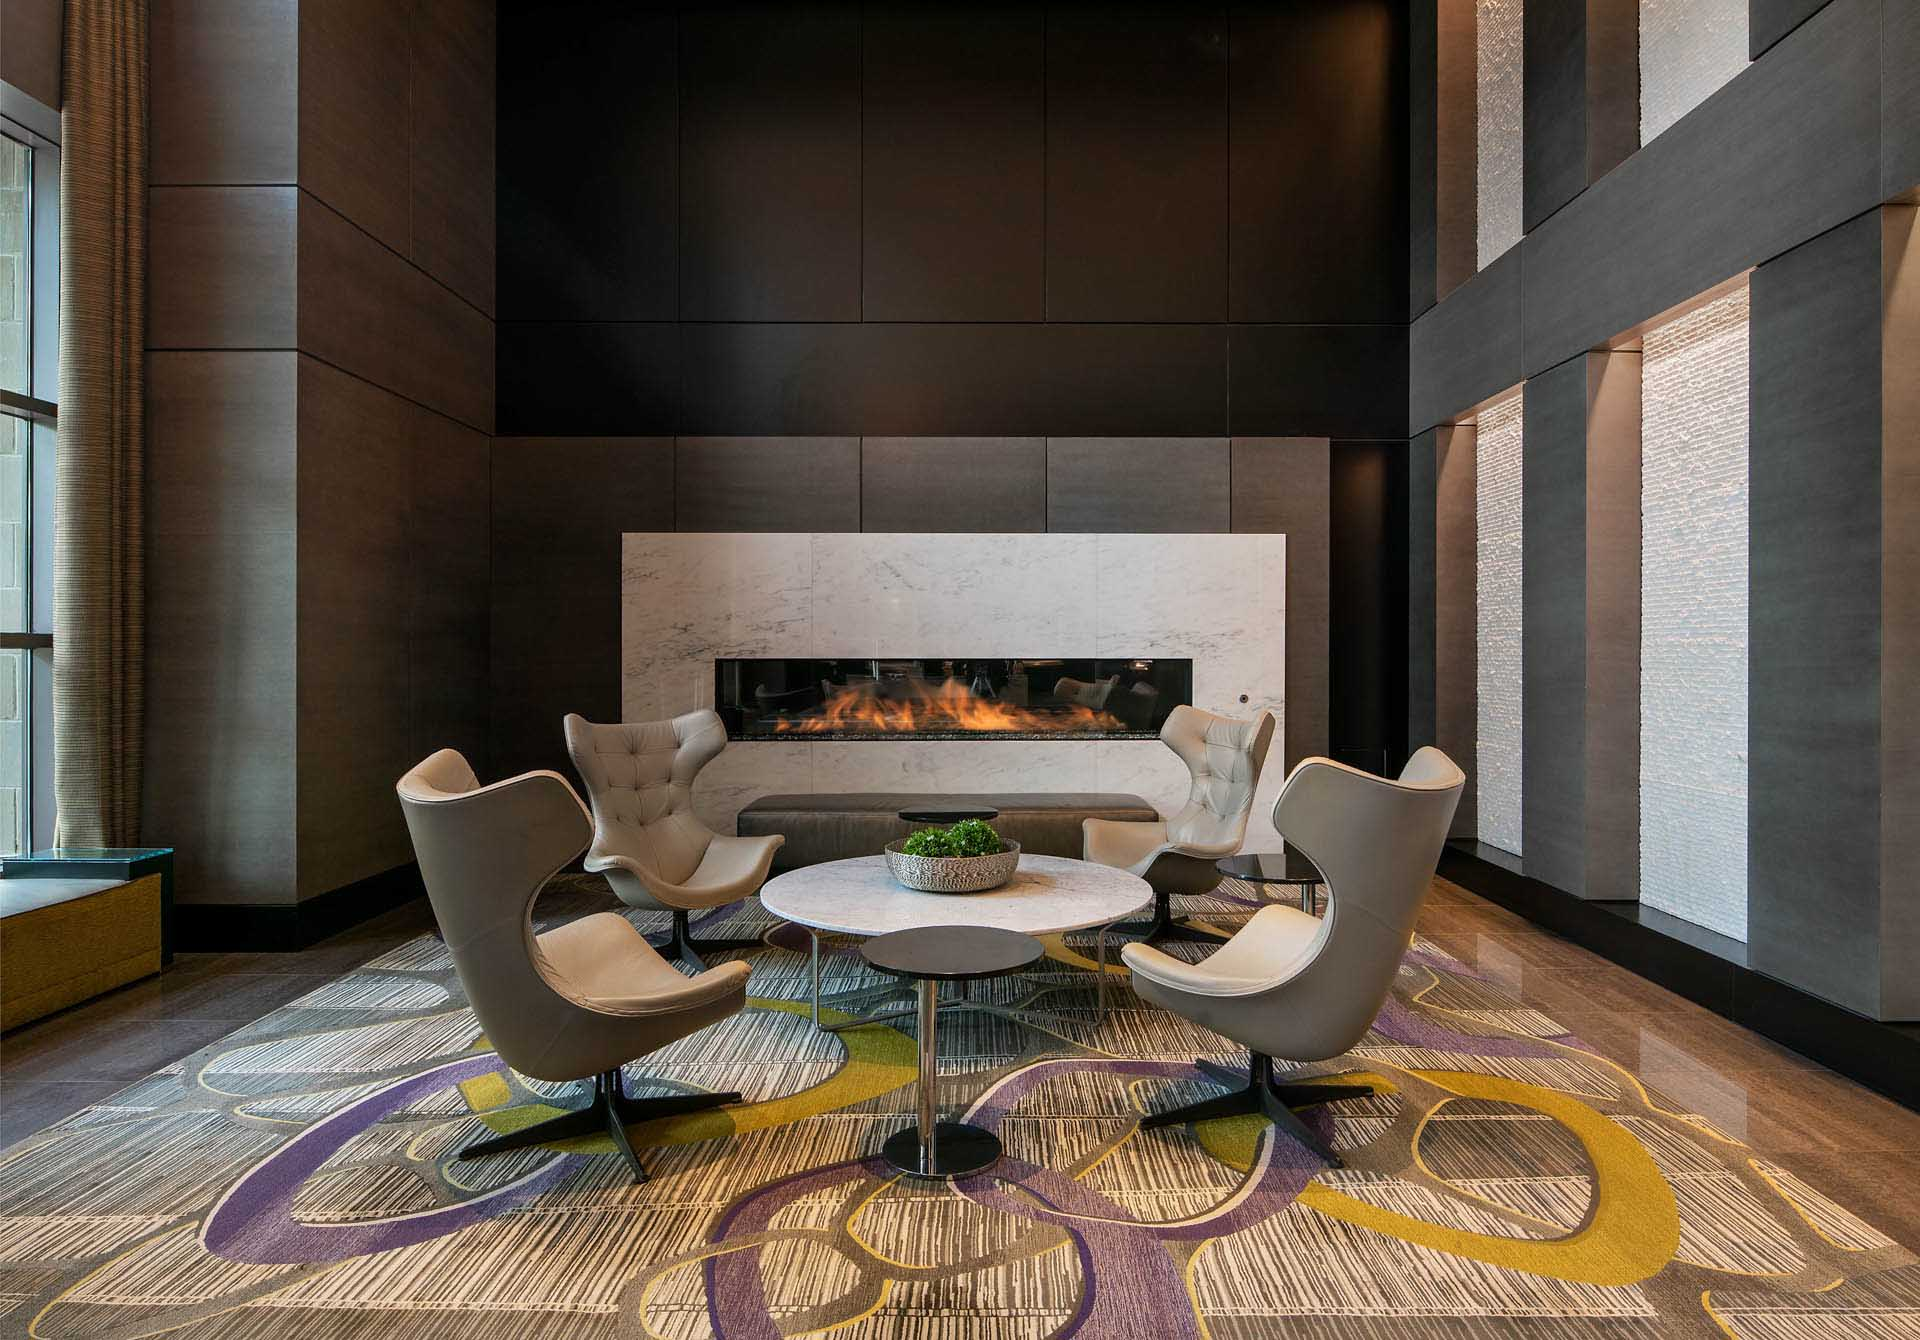 View from reception to lobby seating area with large coffee table and large fireplace